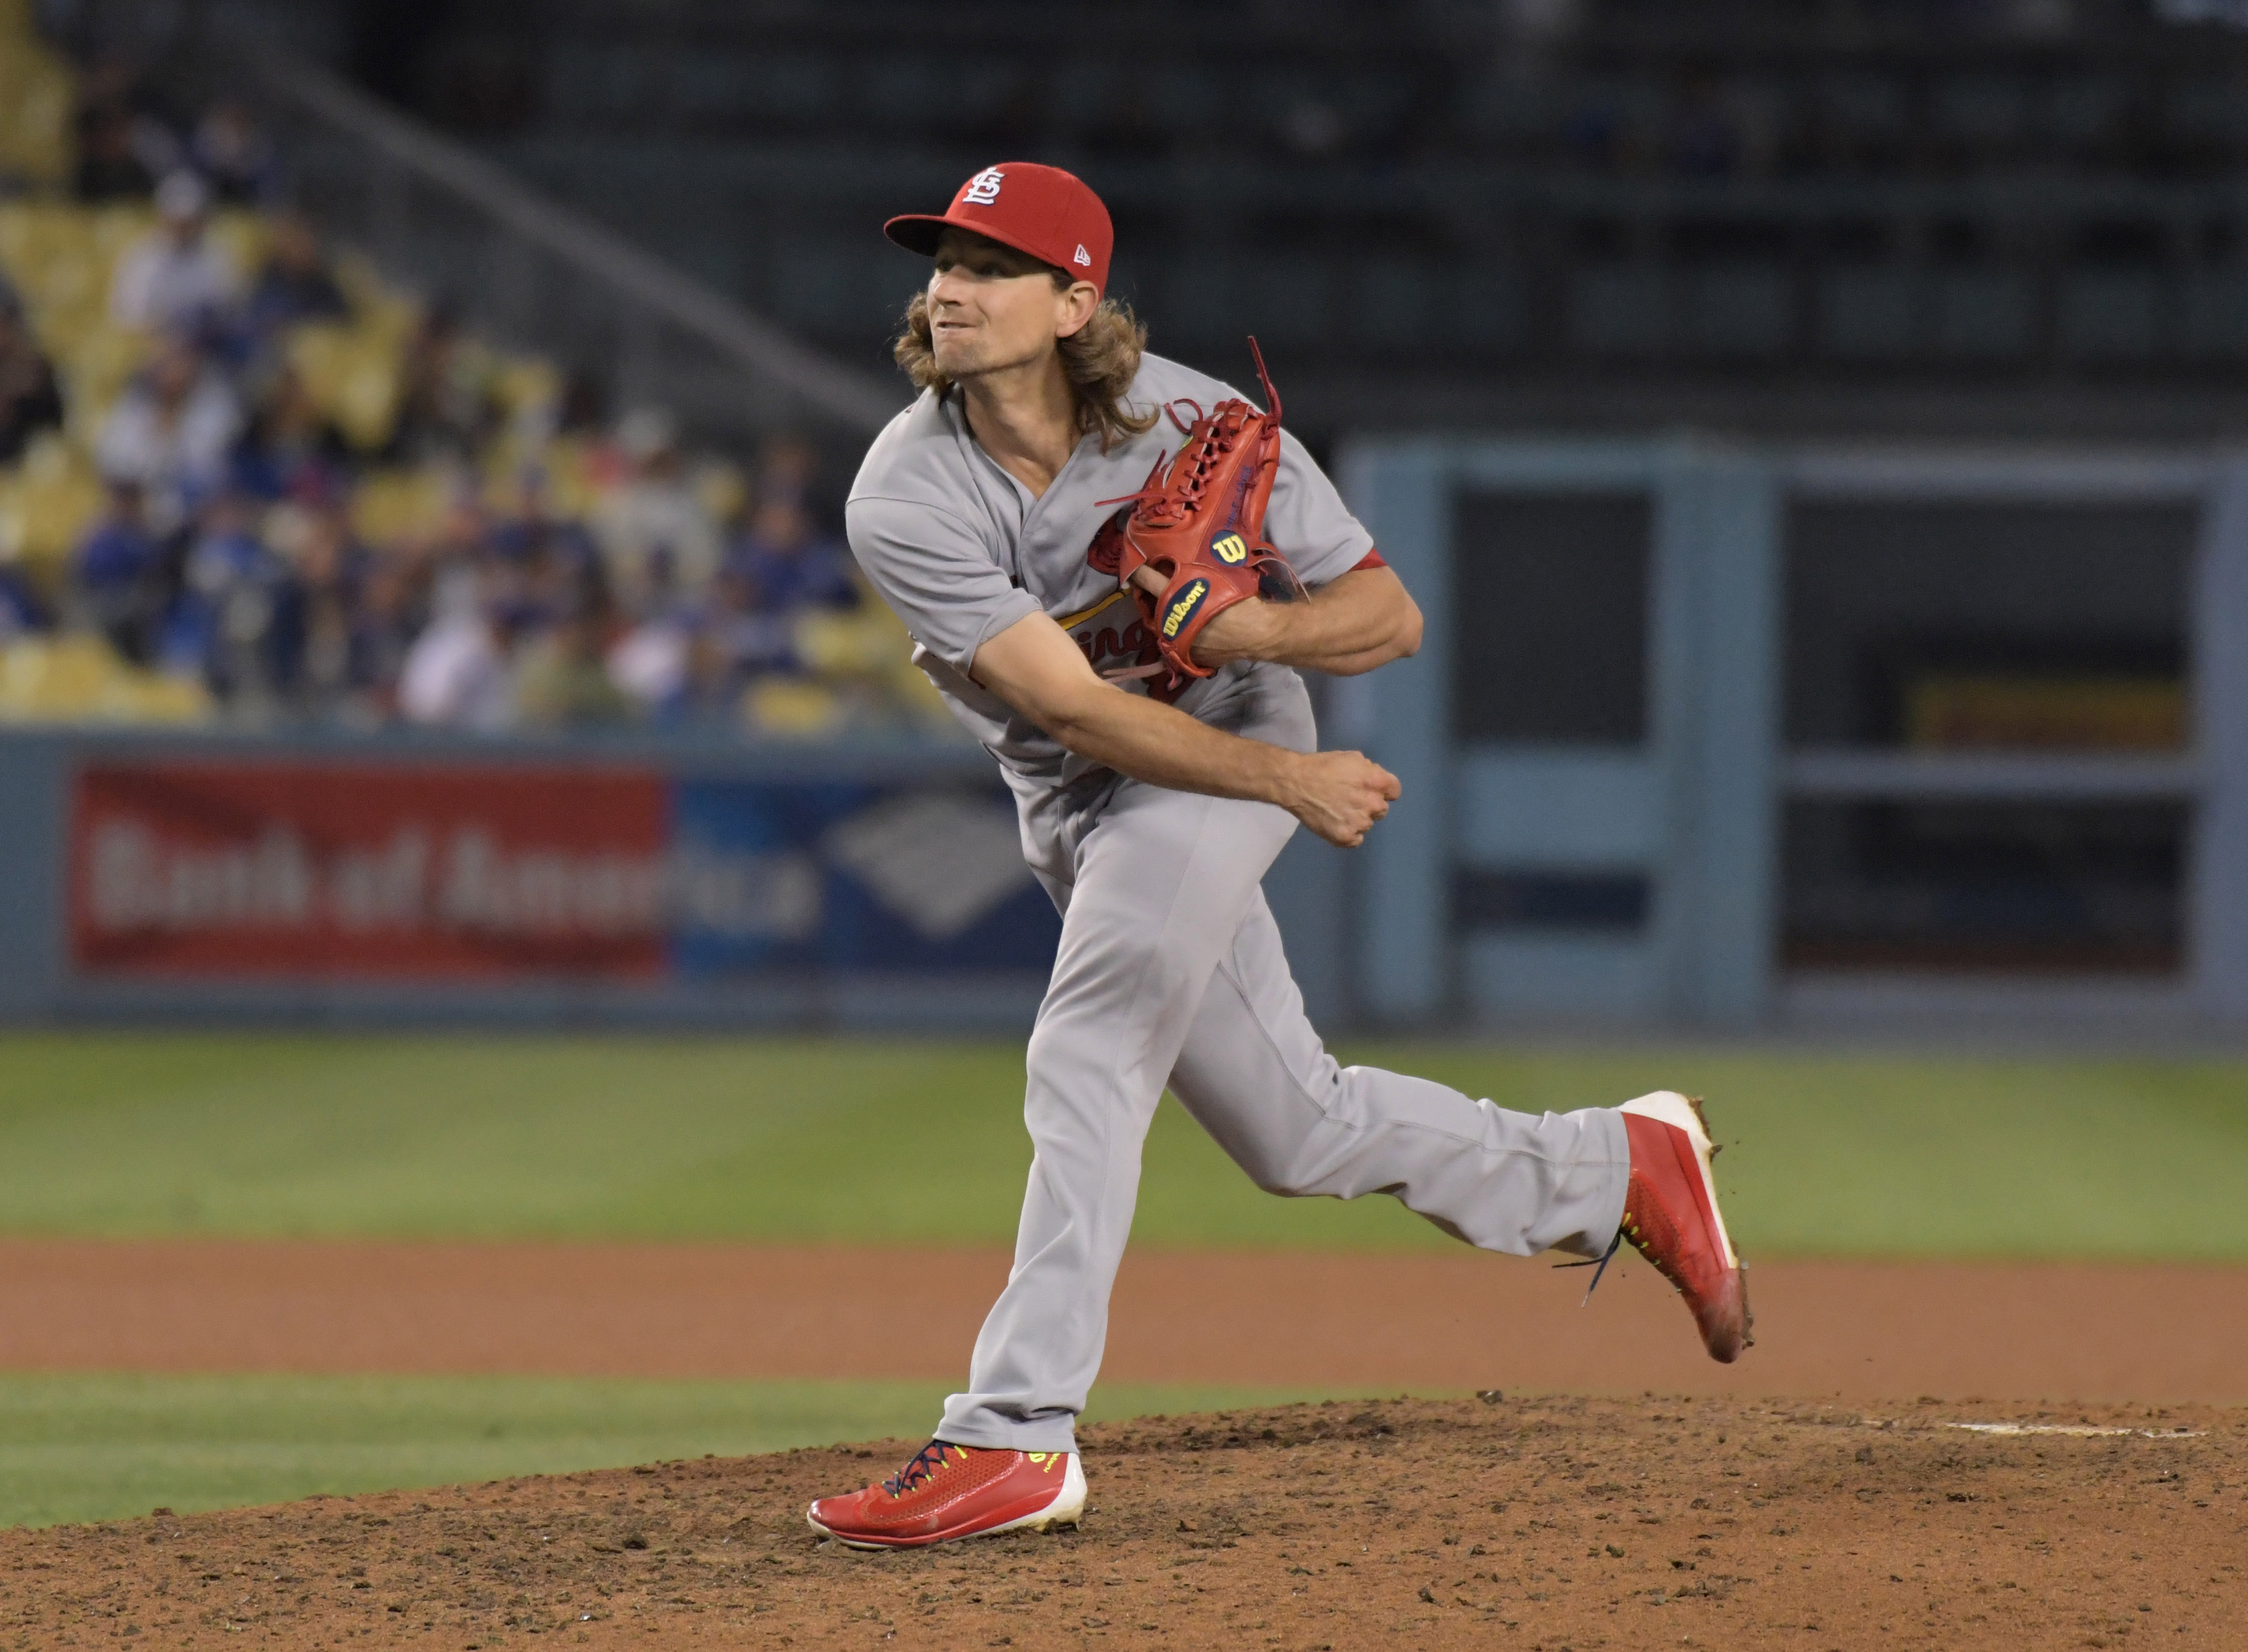 10072549-mlb-st.-louis-cardinals-at-los-angeles-dodgers